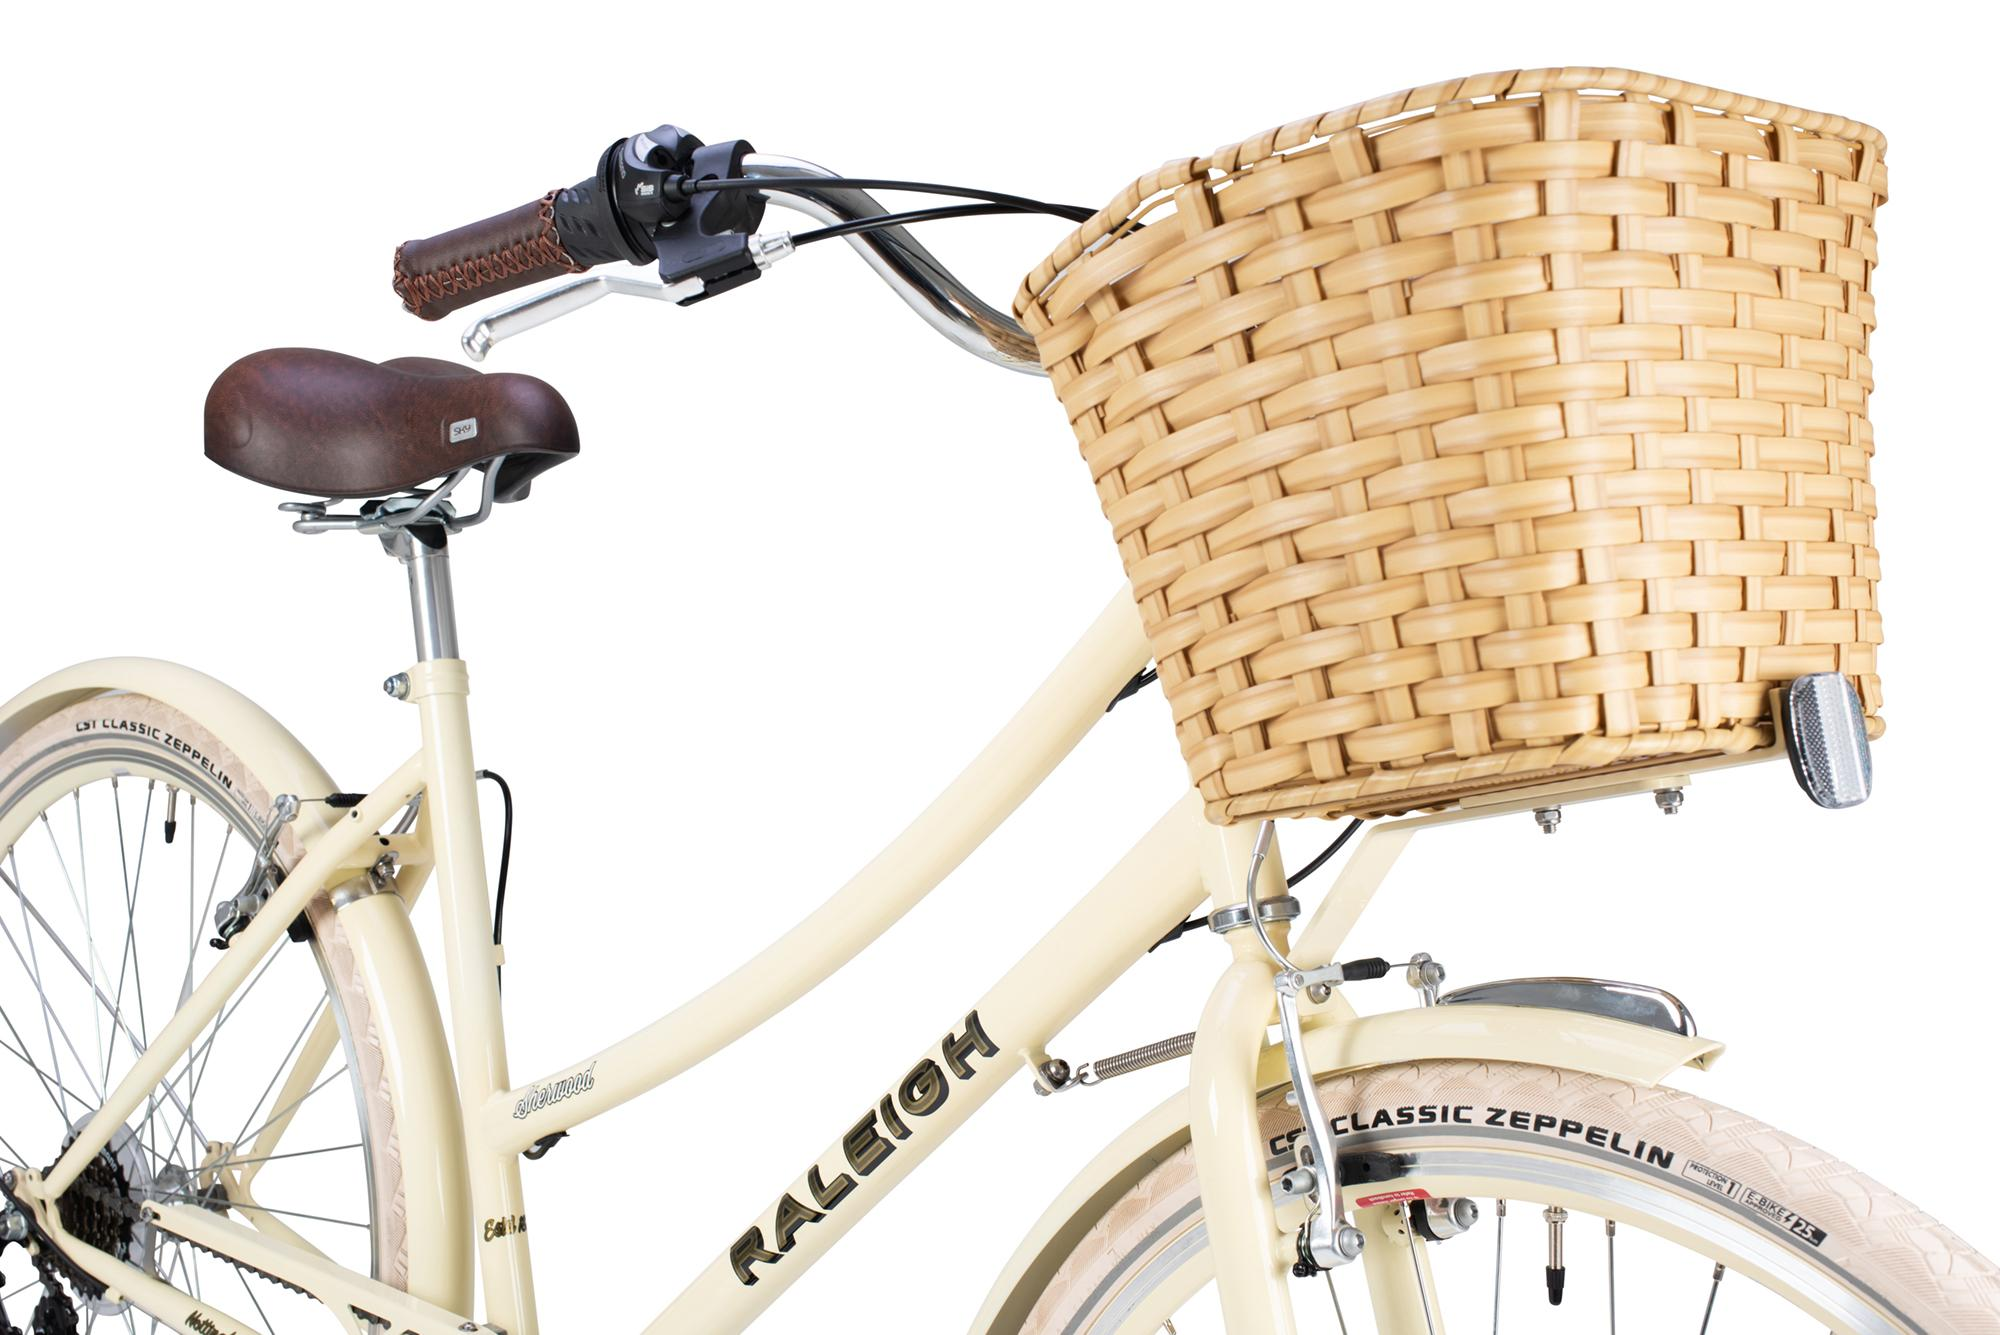 Basket on the front of the Raleigh Sherwood classic ladies bike